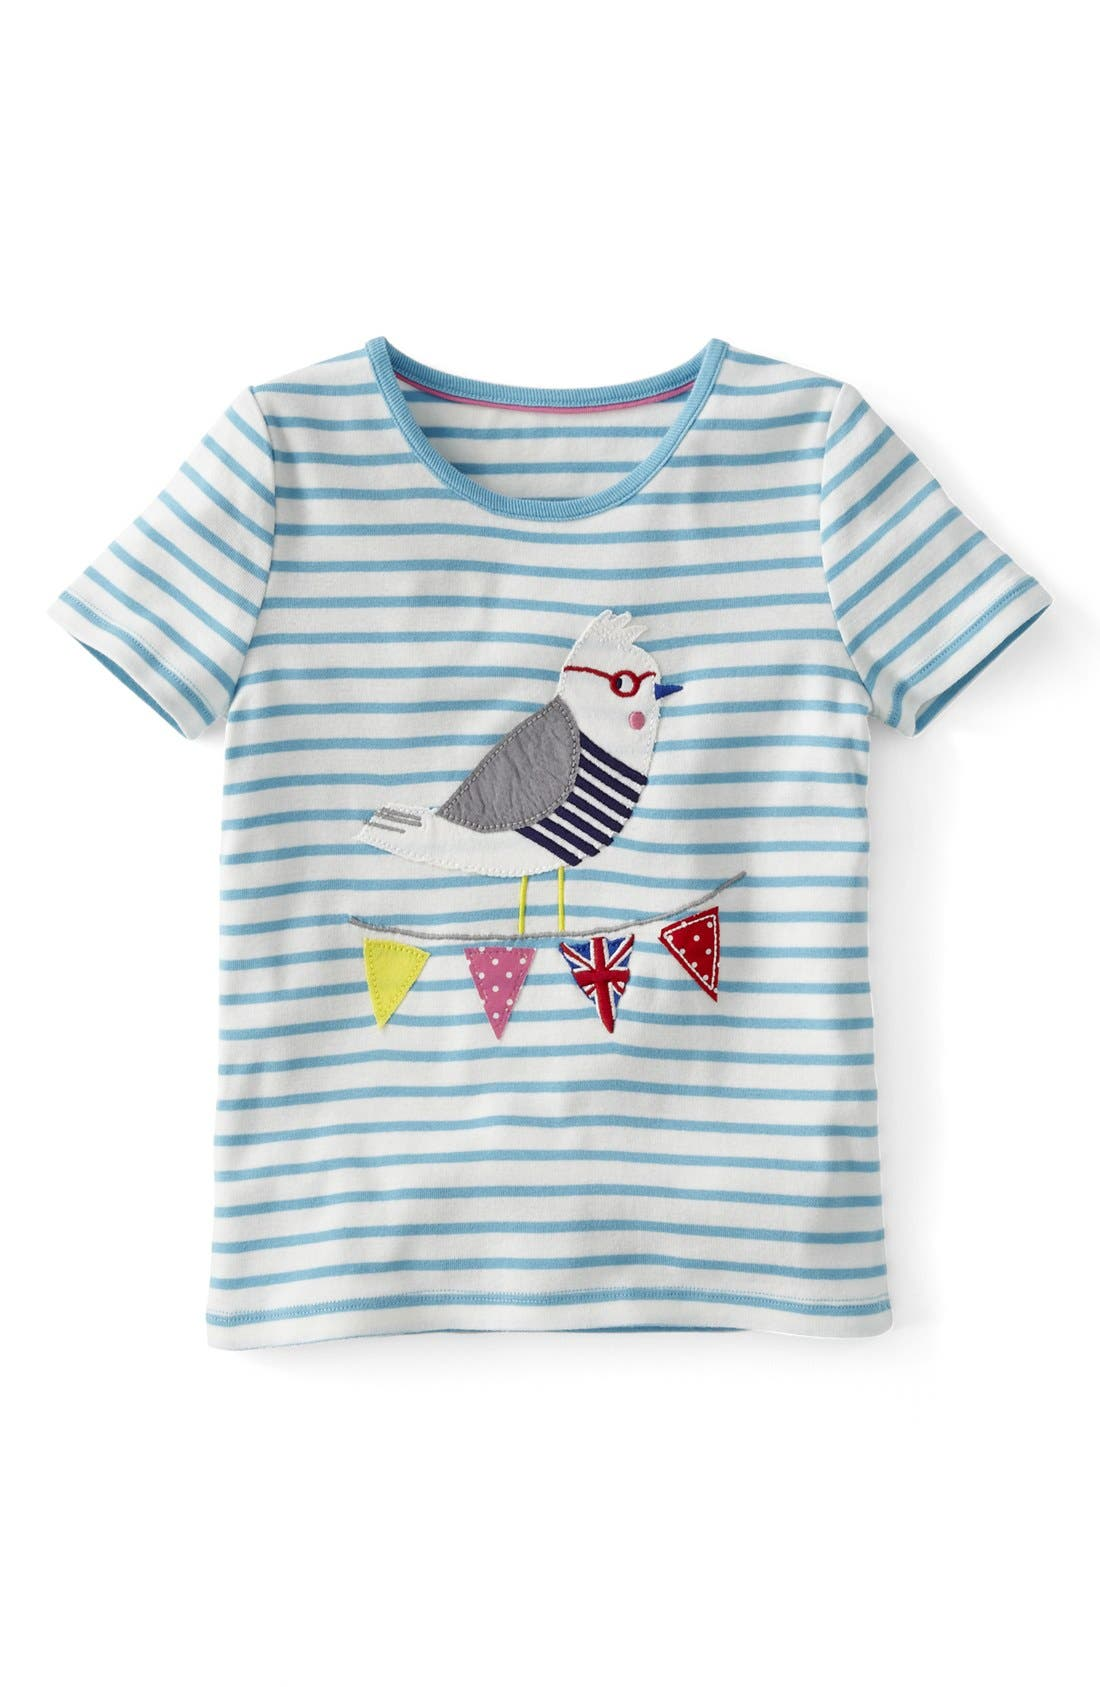 Main Image - Mini Boden 'Seaside' Appliqué Tee (Little Girls & Big Girls)